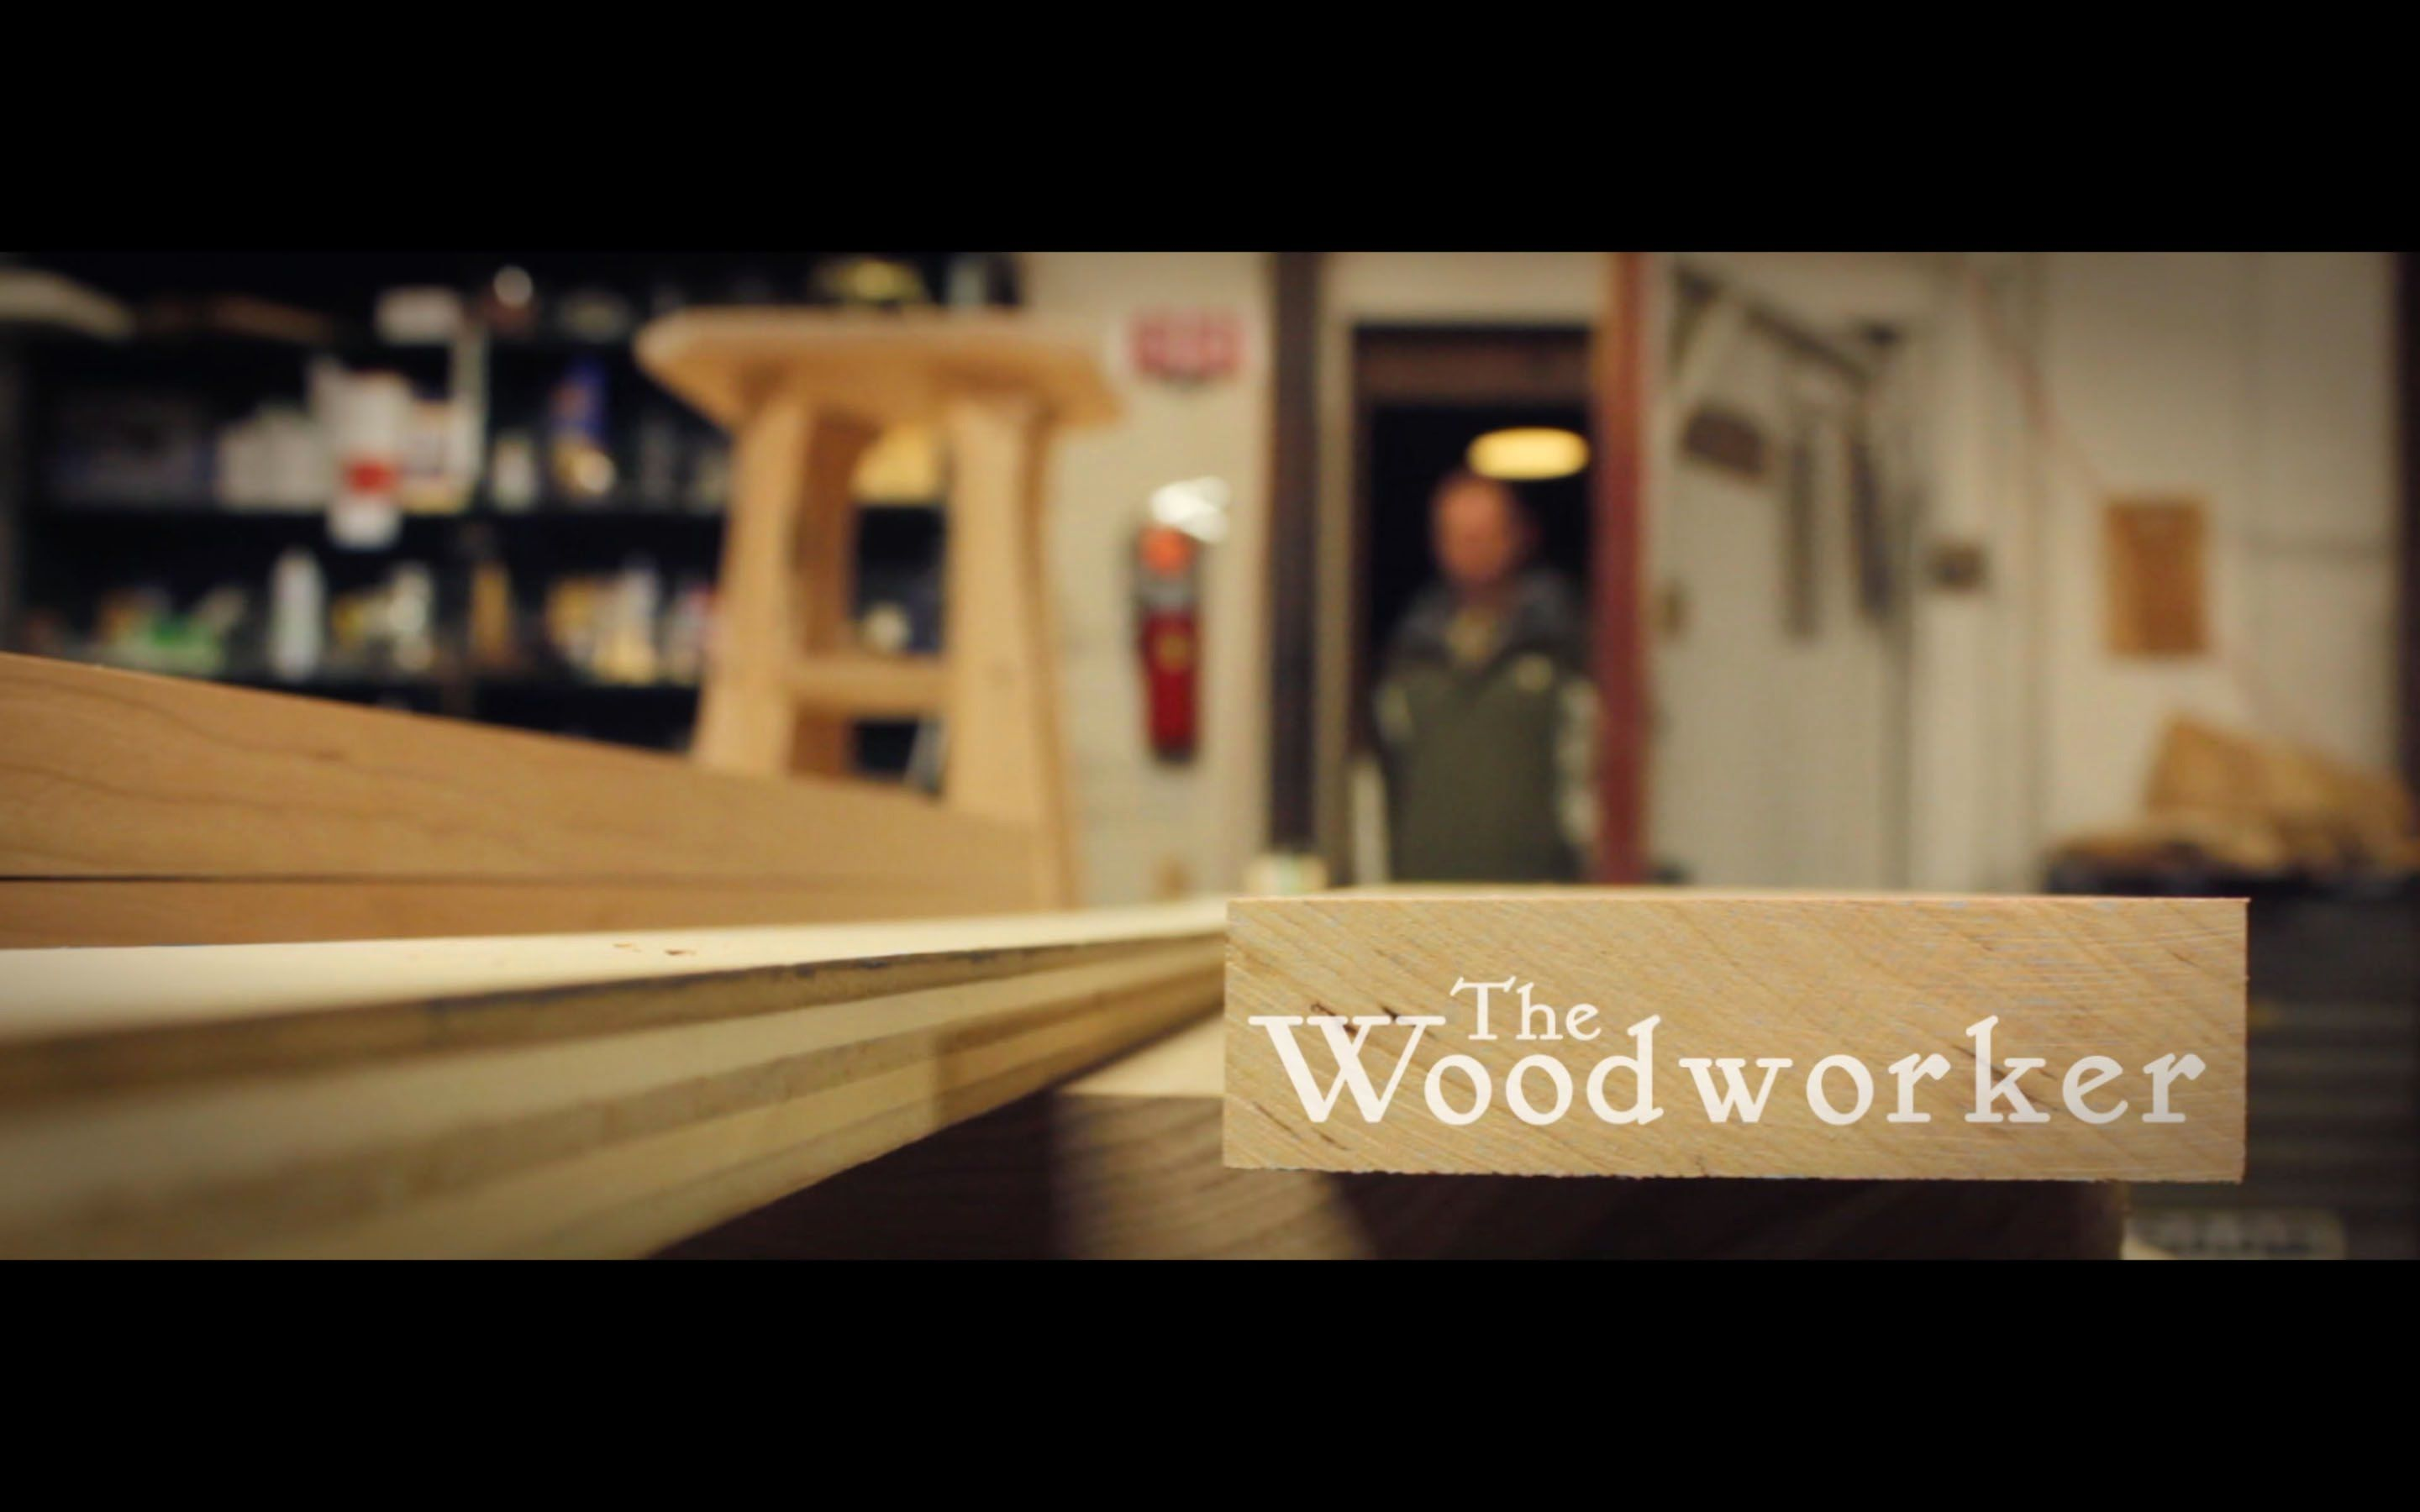 The Woodworker 3min